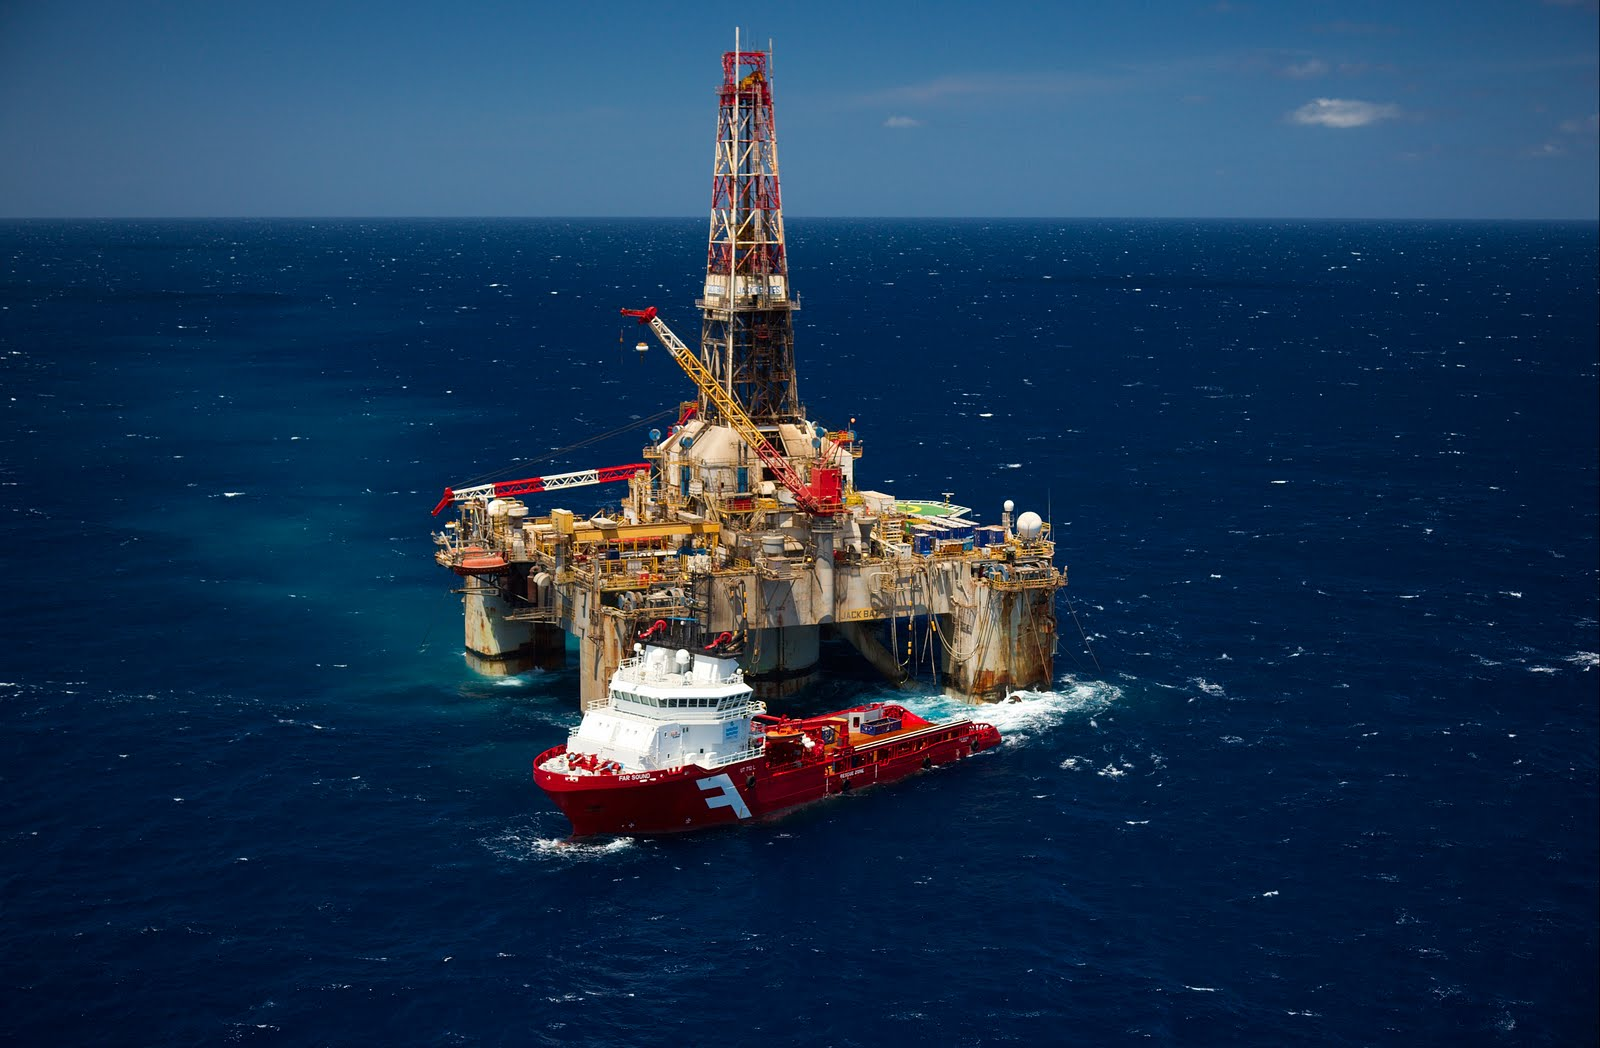 Tough times for offshore and marine industry as oil prices fall